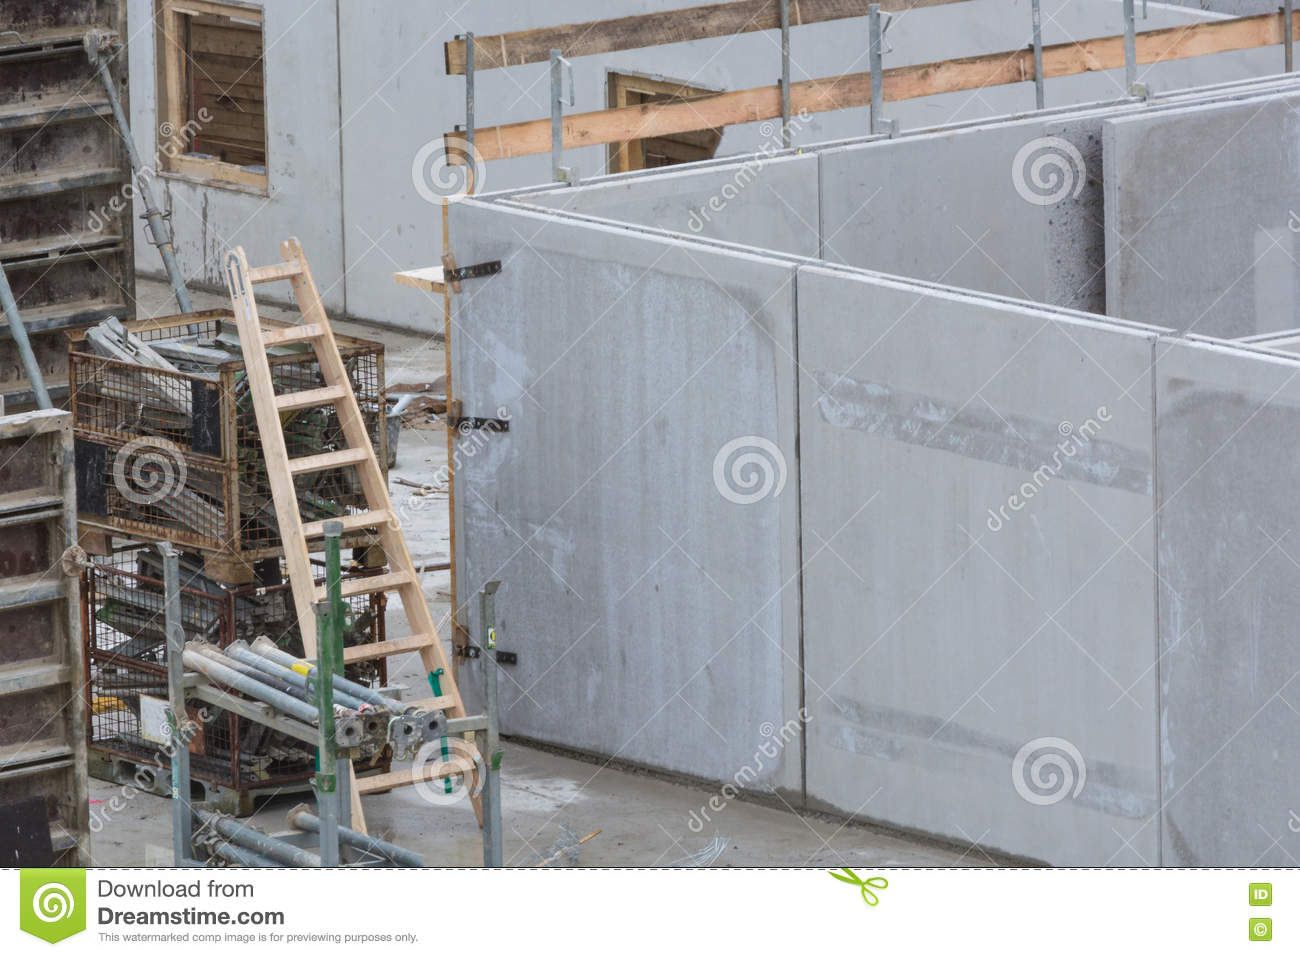 Building construction with concrete walls stock image for Precast concrete basement walls cost